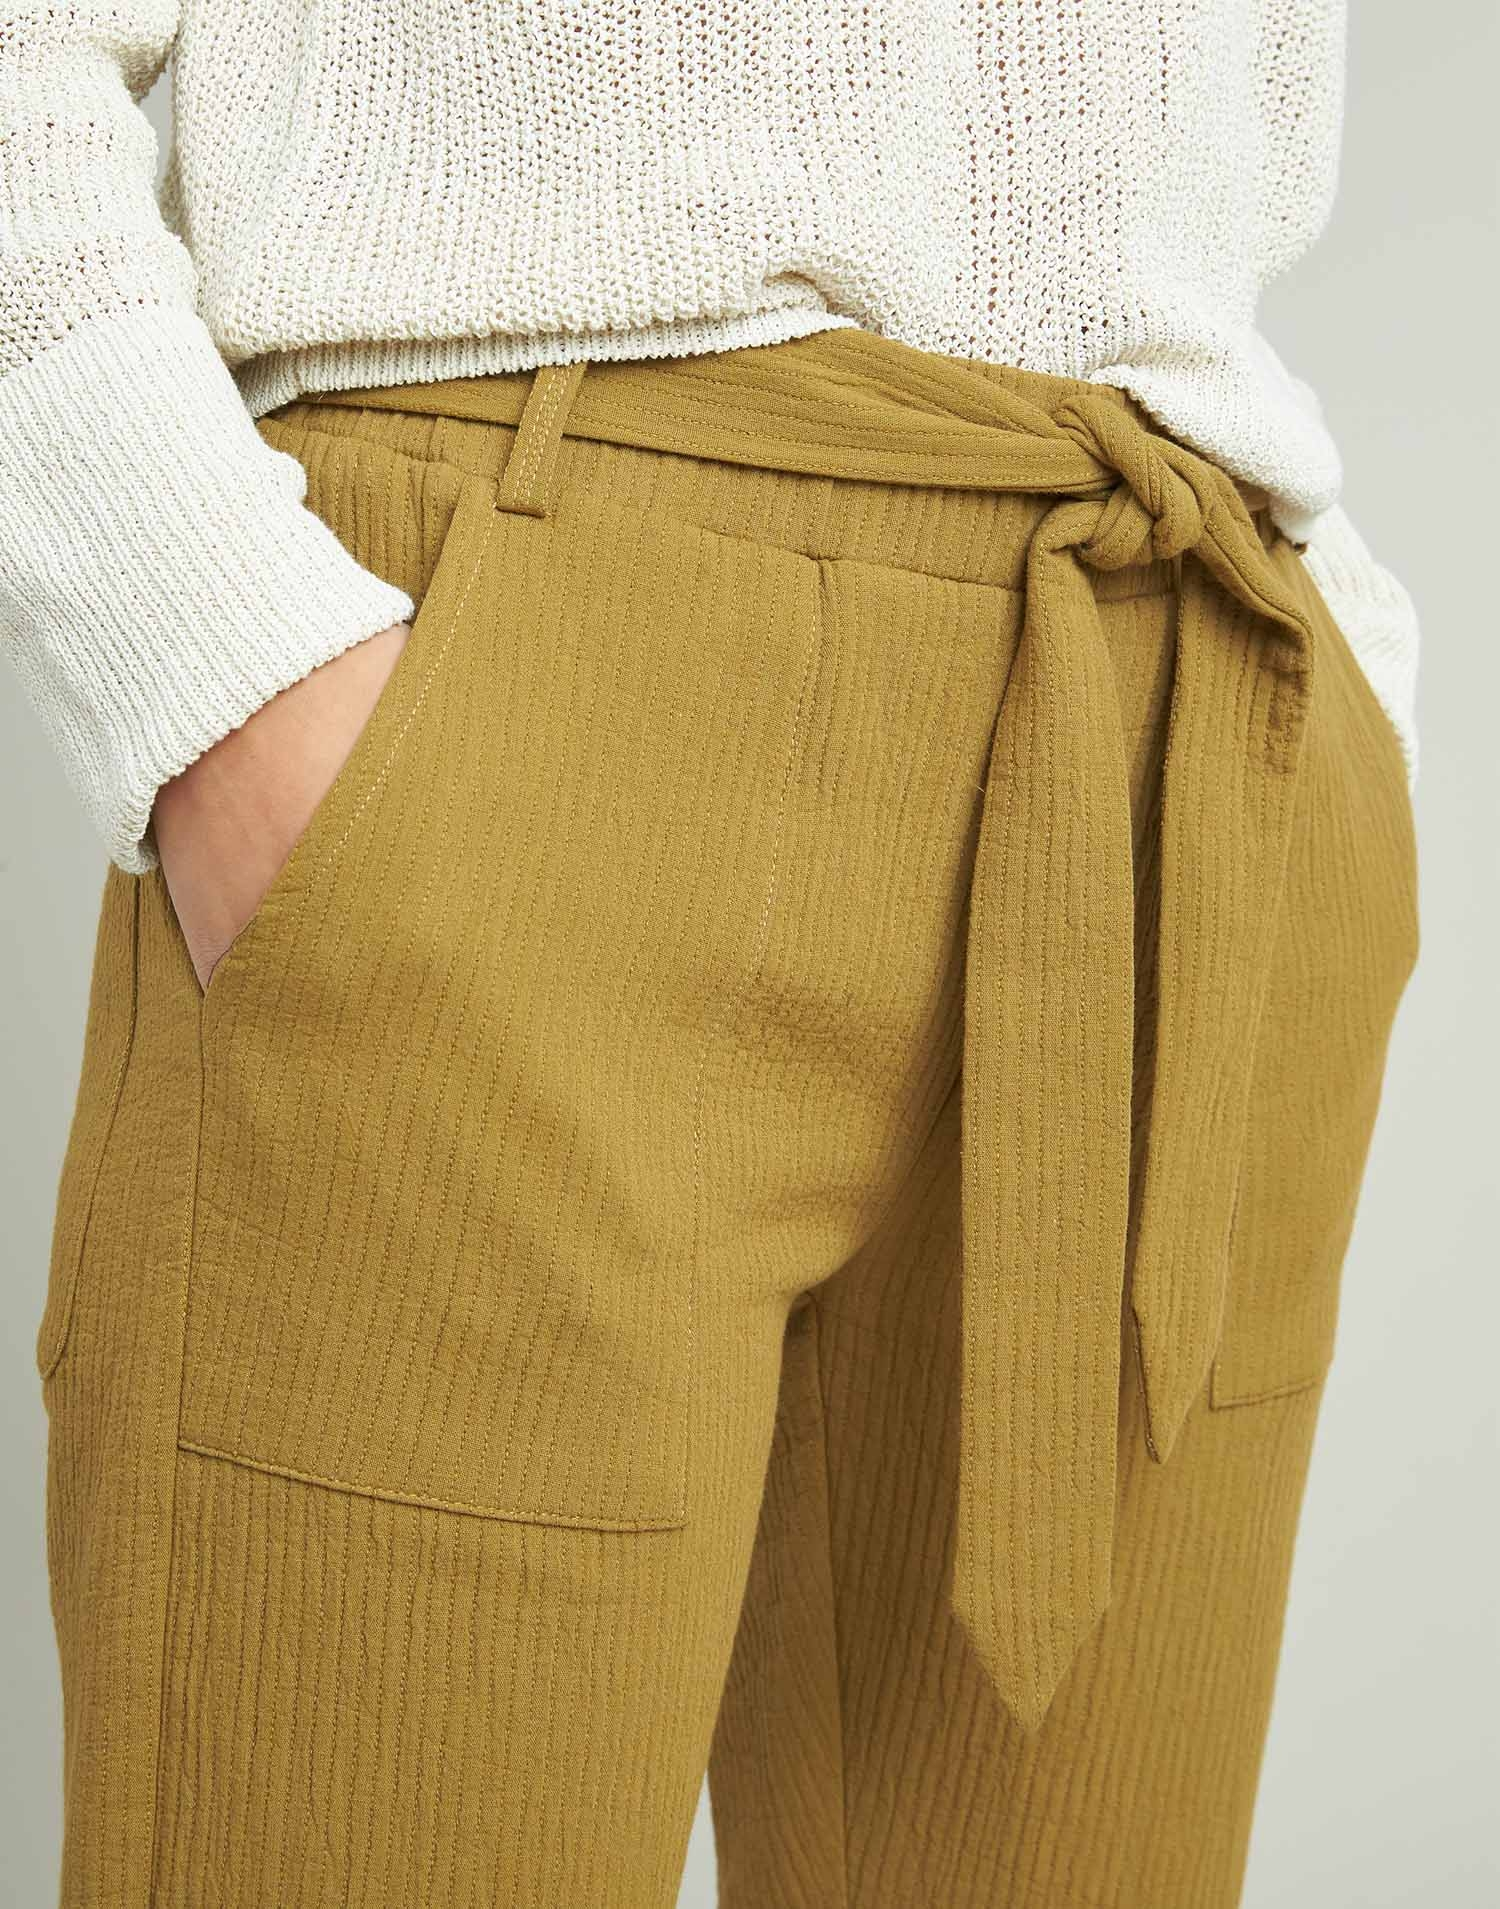 Stitching pants with belt